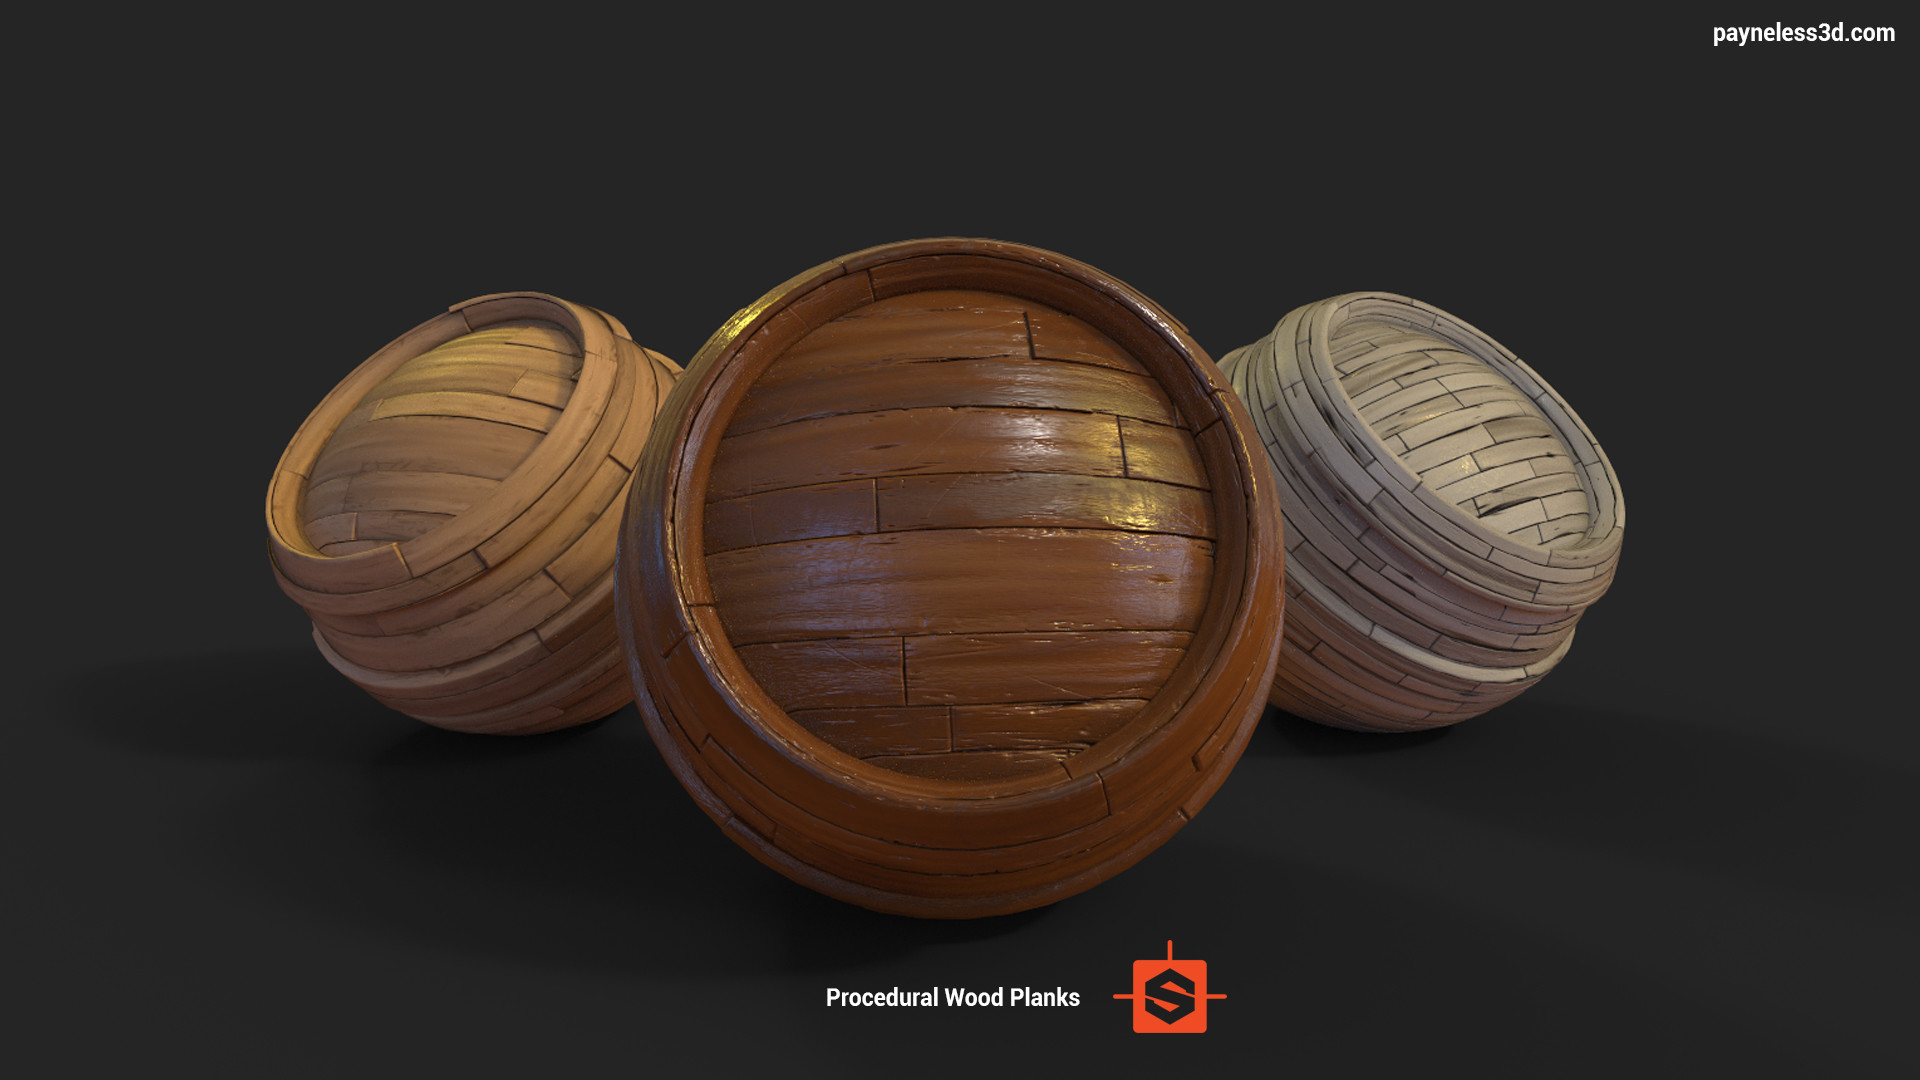 Procedural Worn Wood Planks Material